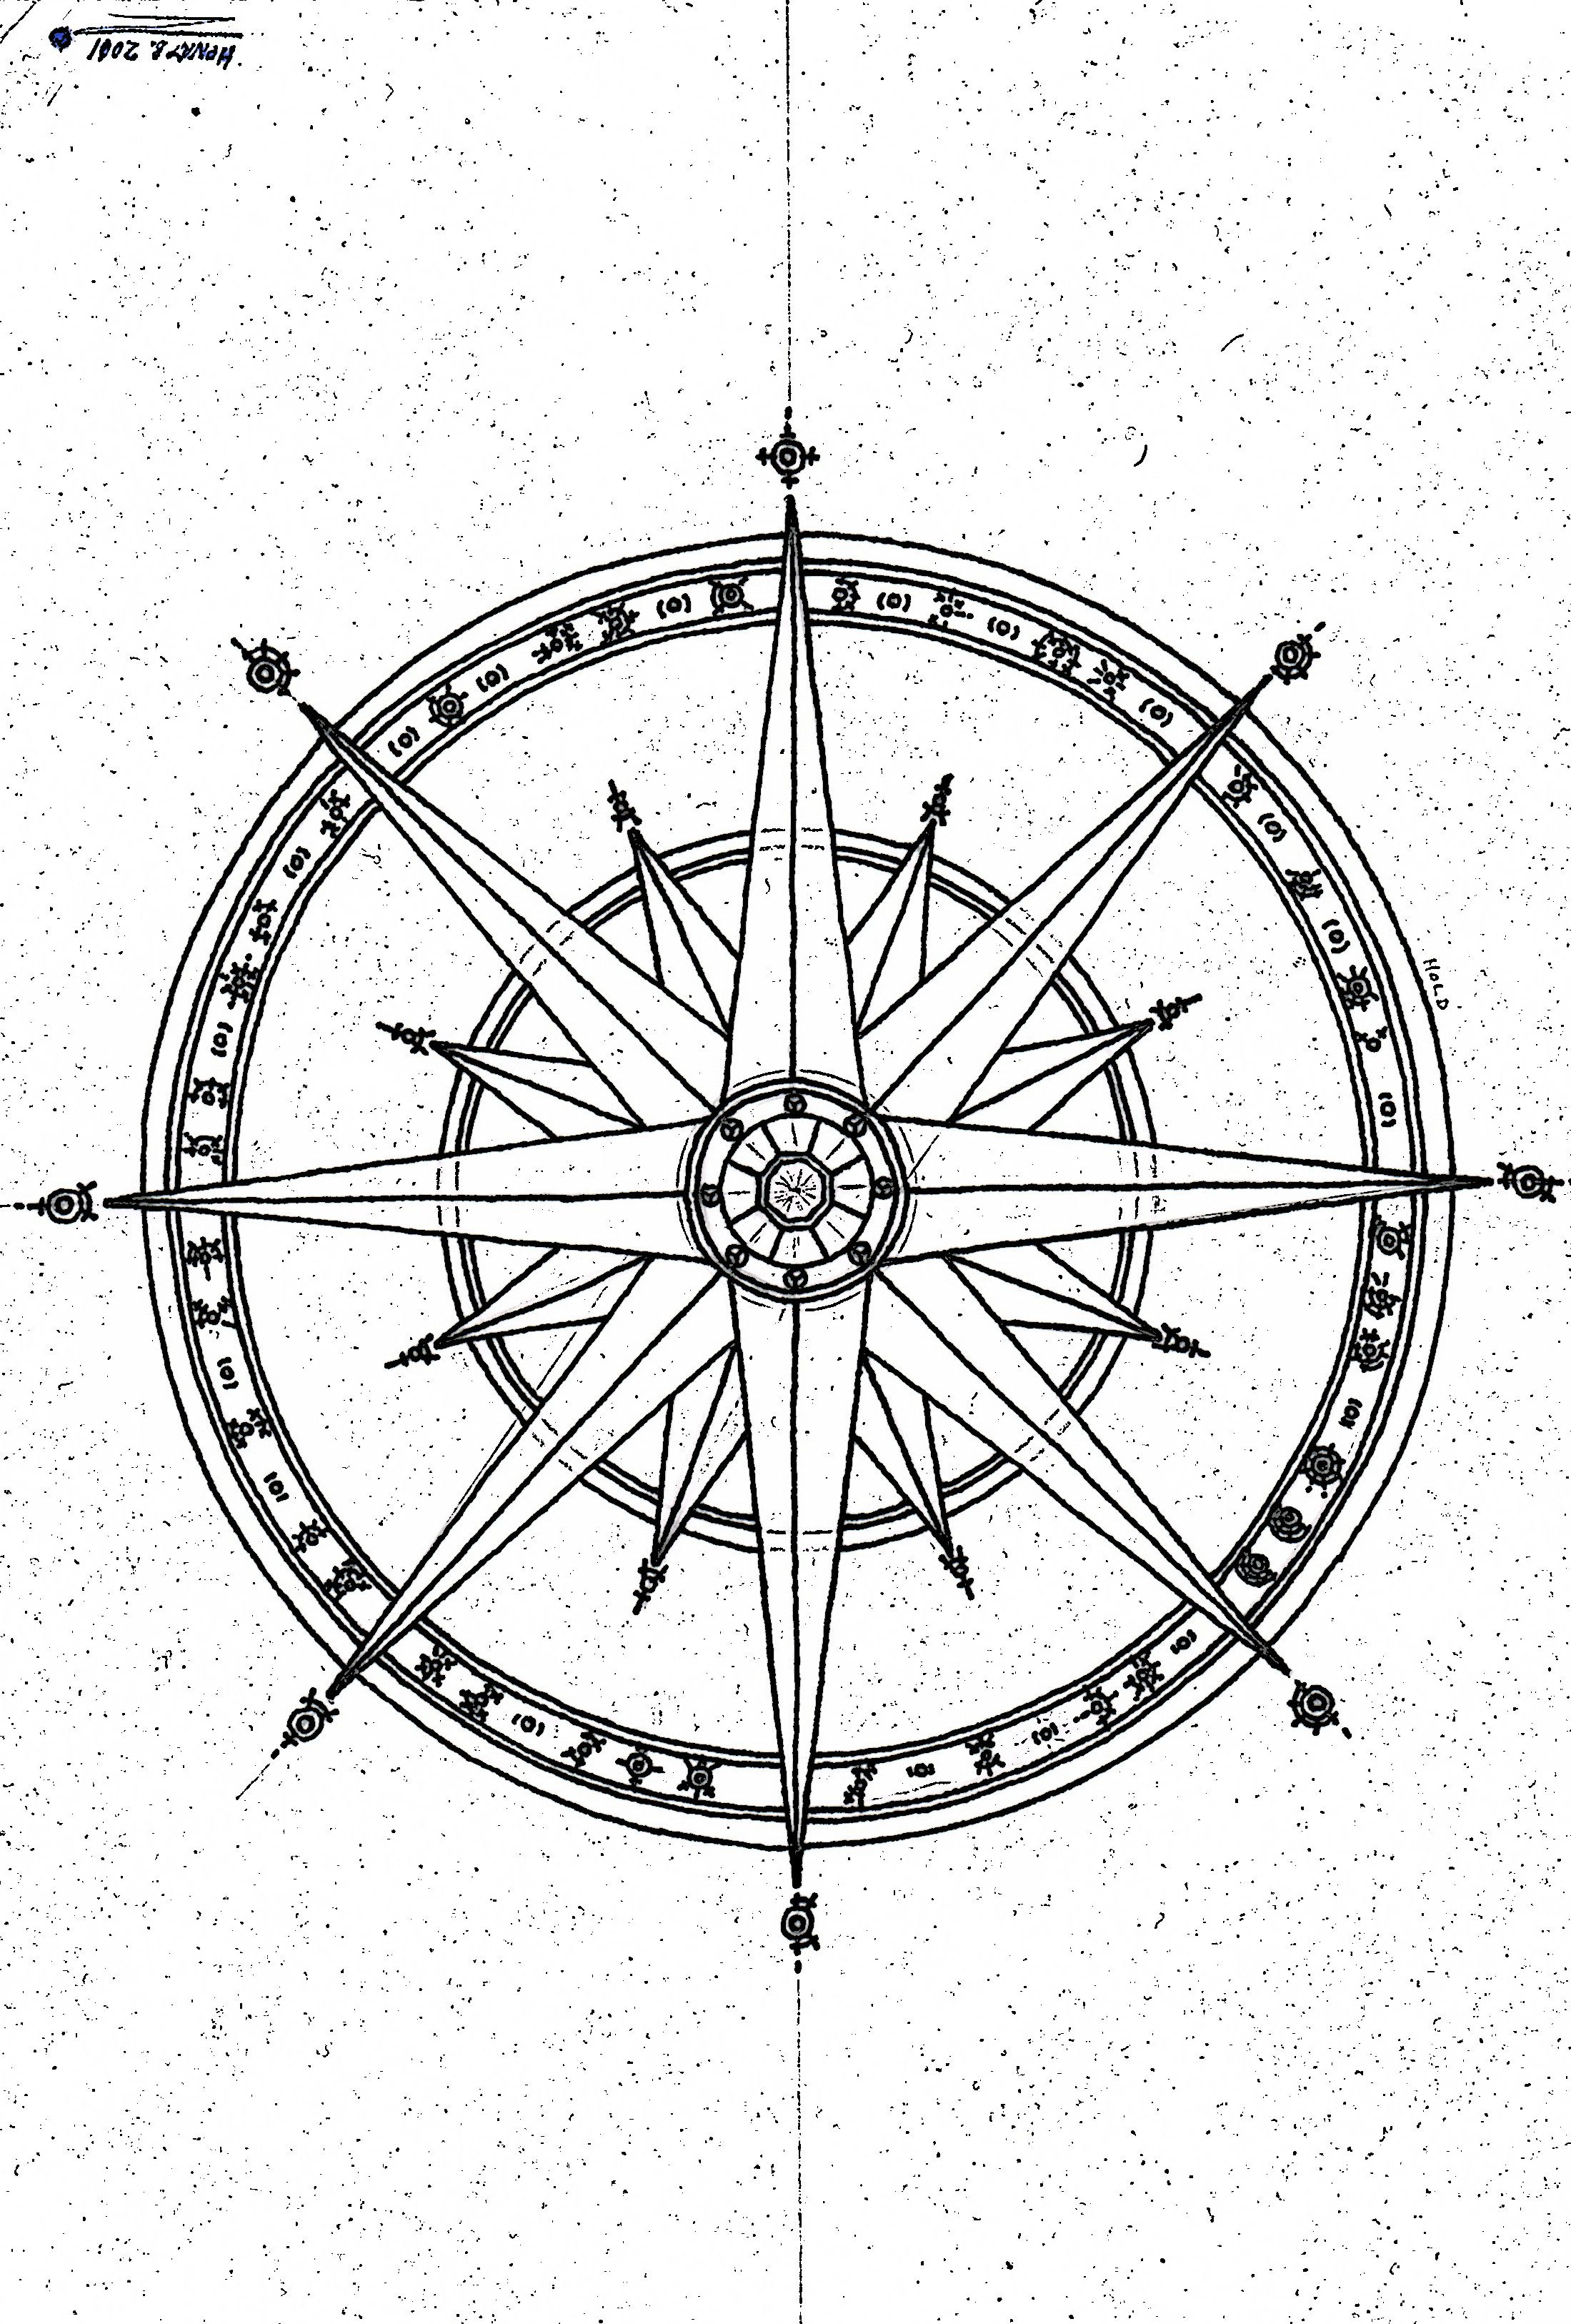 worksheet Compass Rose Worksheet 10 best images about topic compass rose on pinterest map it the and compass